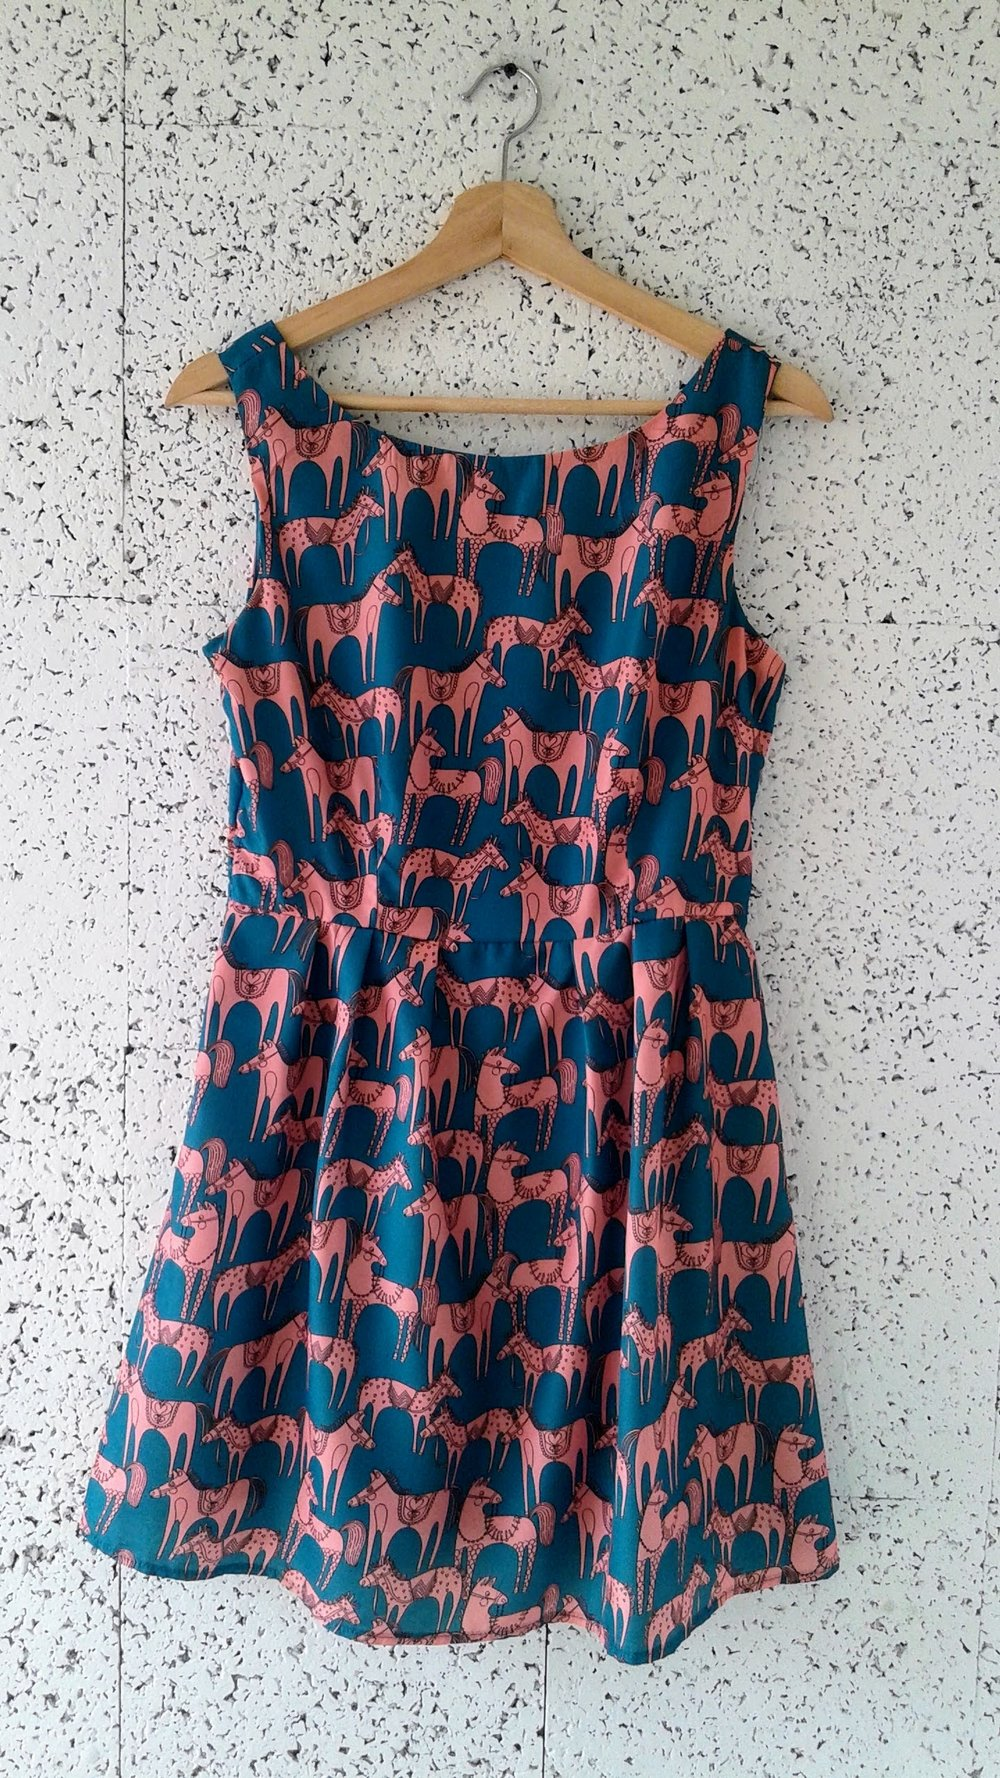 Stella Morgan dress; Size S, $26